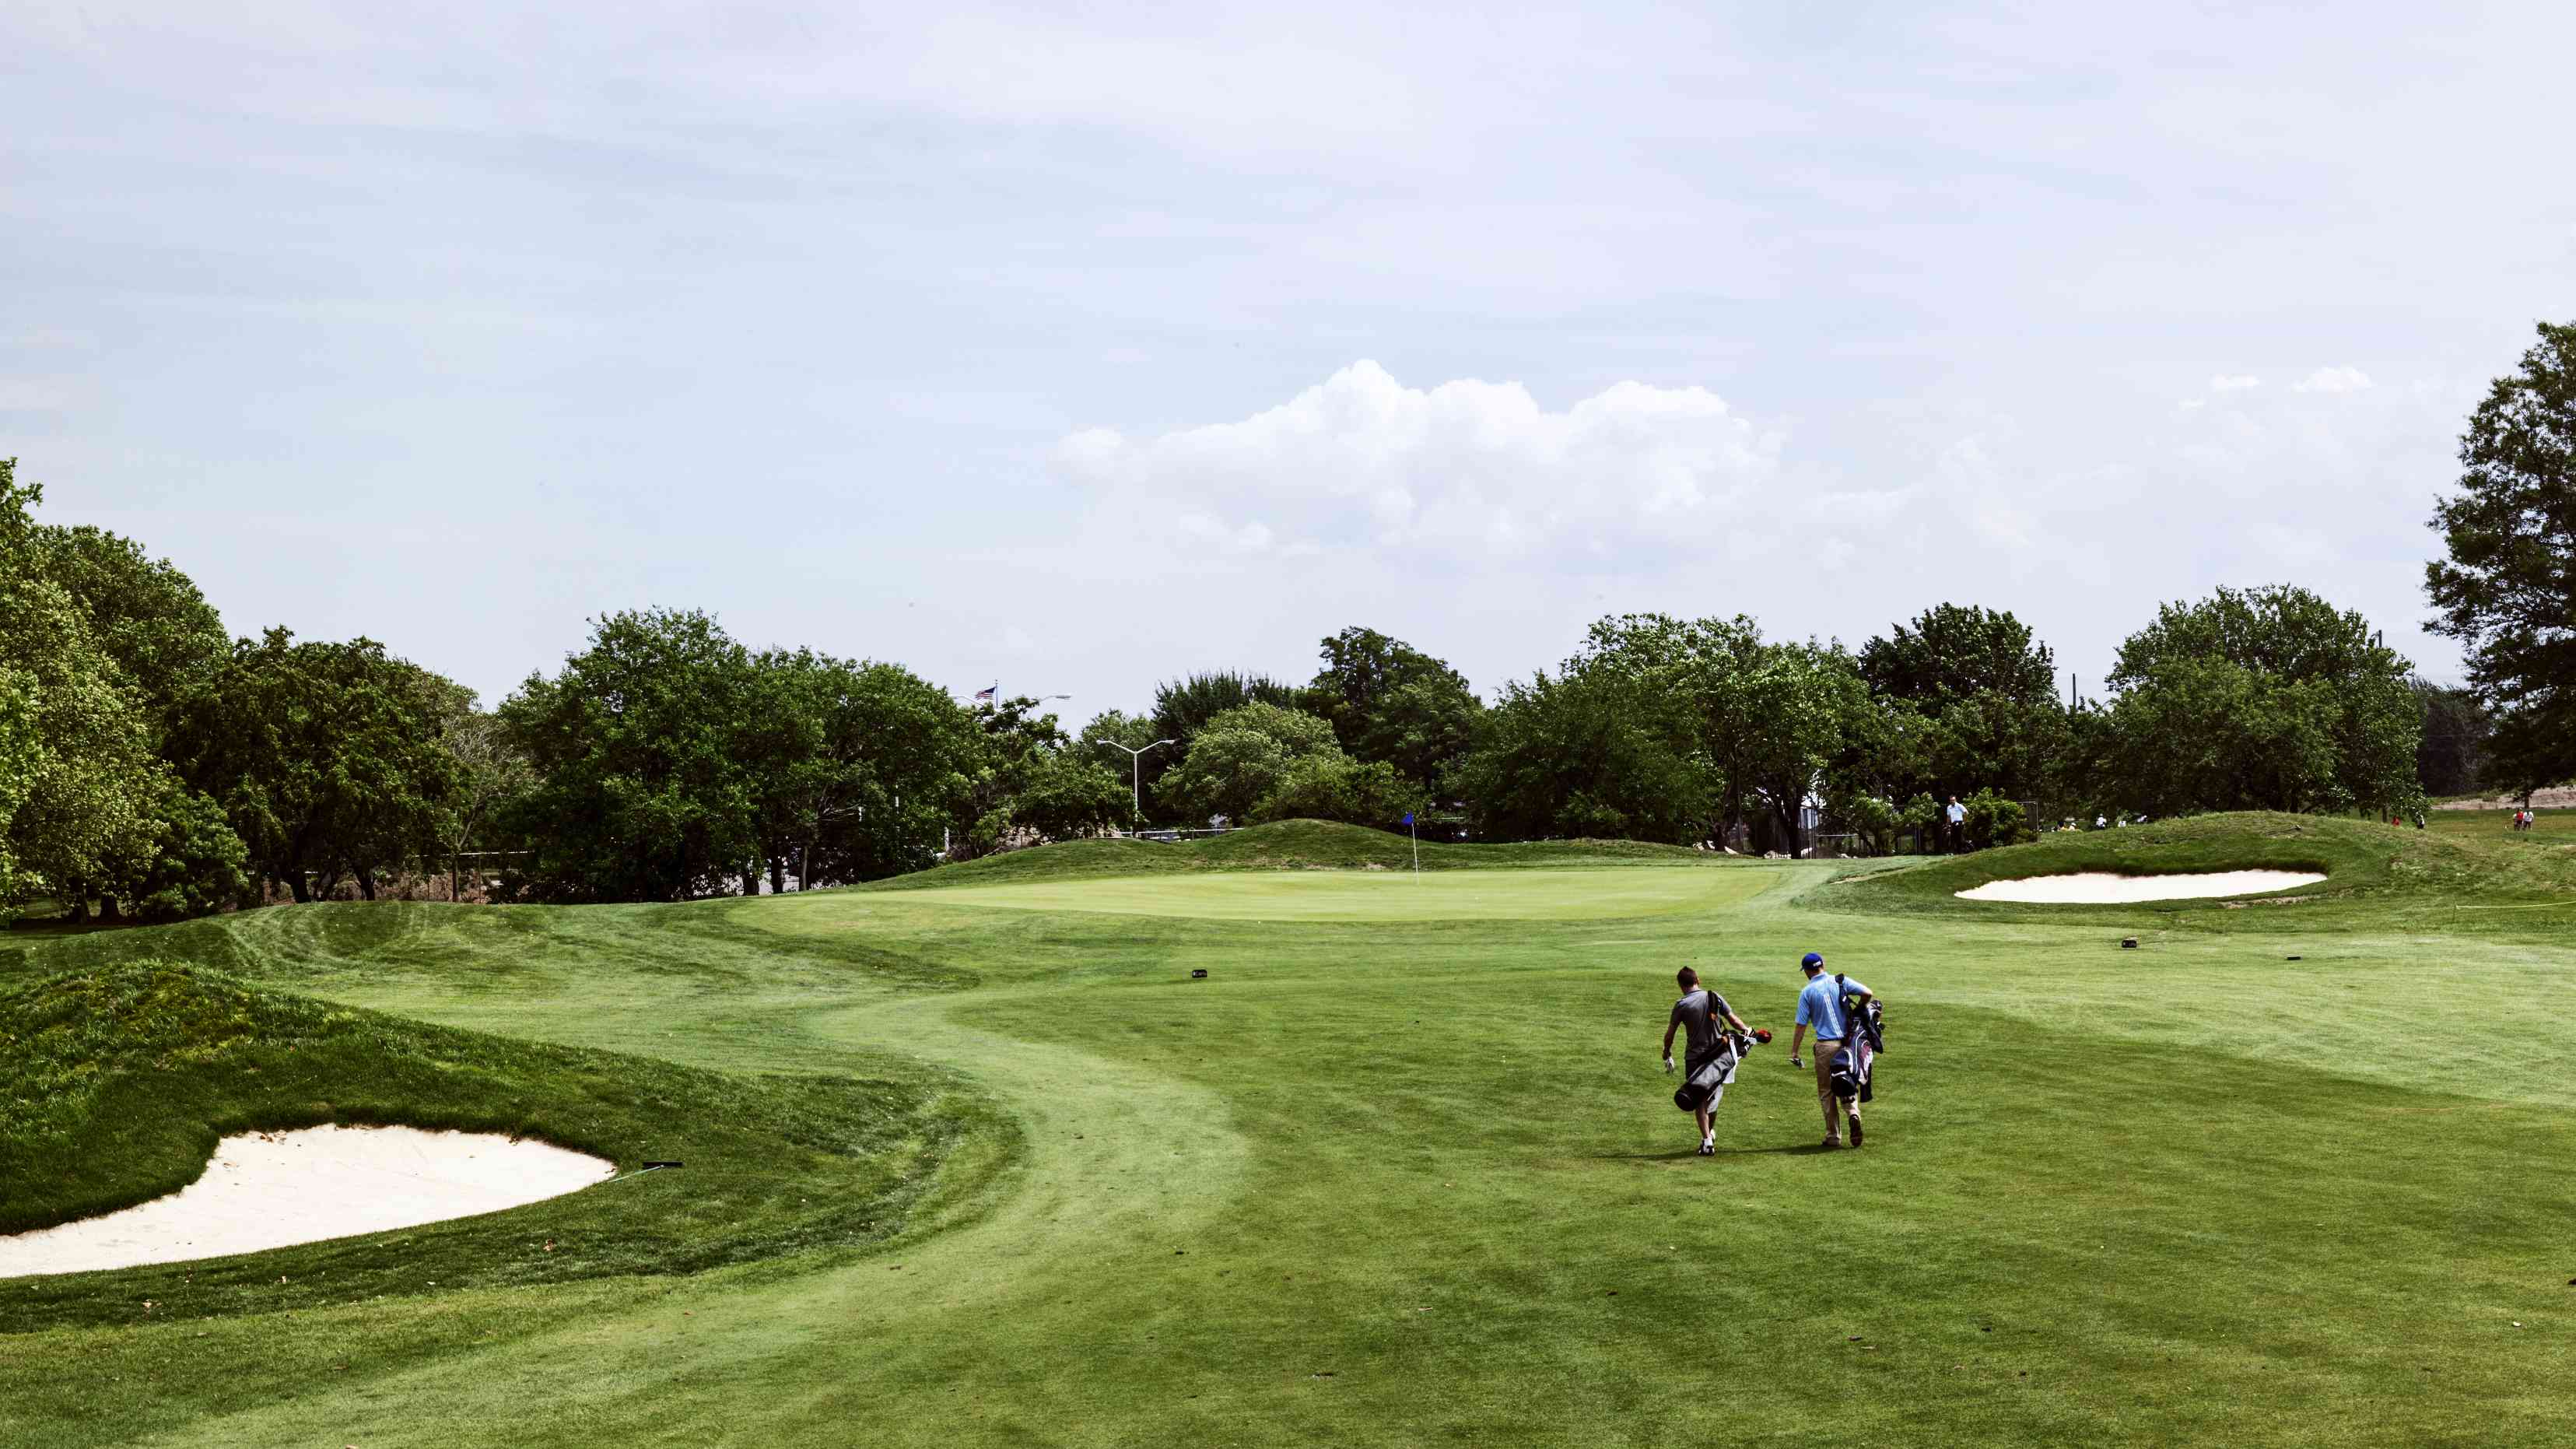 Golfers approach the 14th green at Marine Park Golf Course.